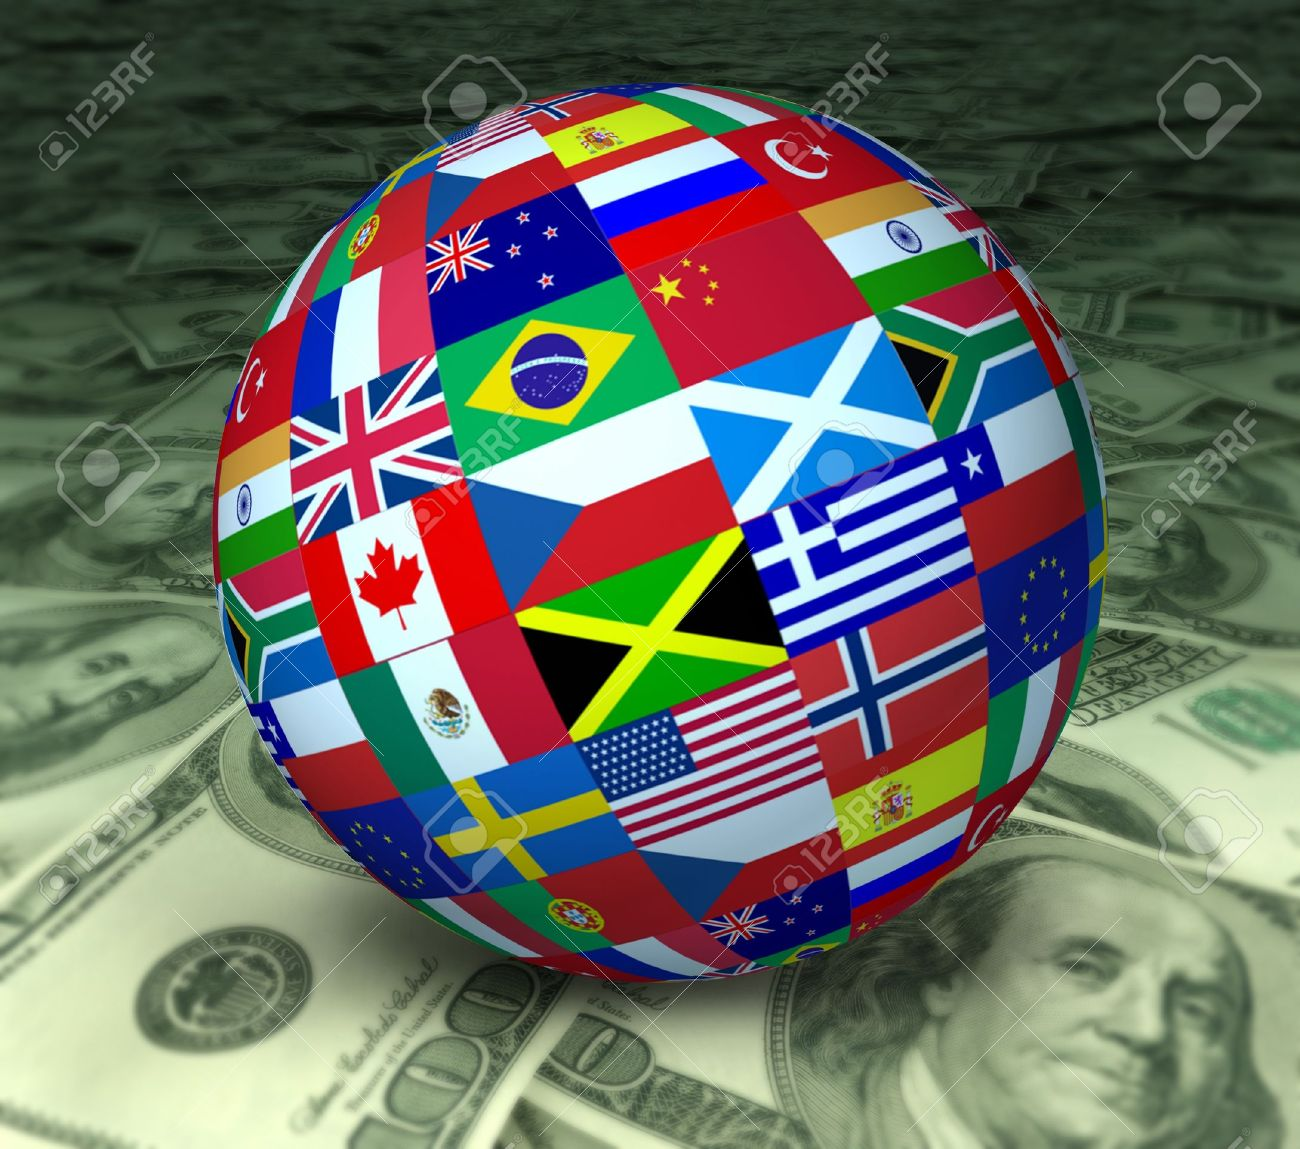 World economy symbol represented by a global sphere with international flags sitting on a floor of currency. Stock Photo - 10909966